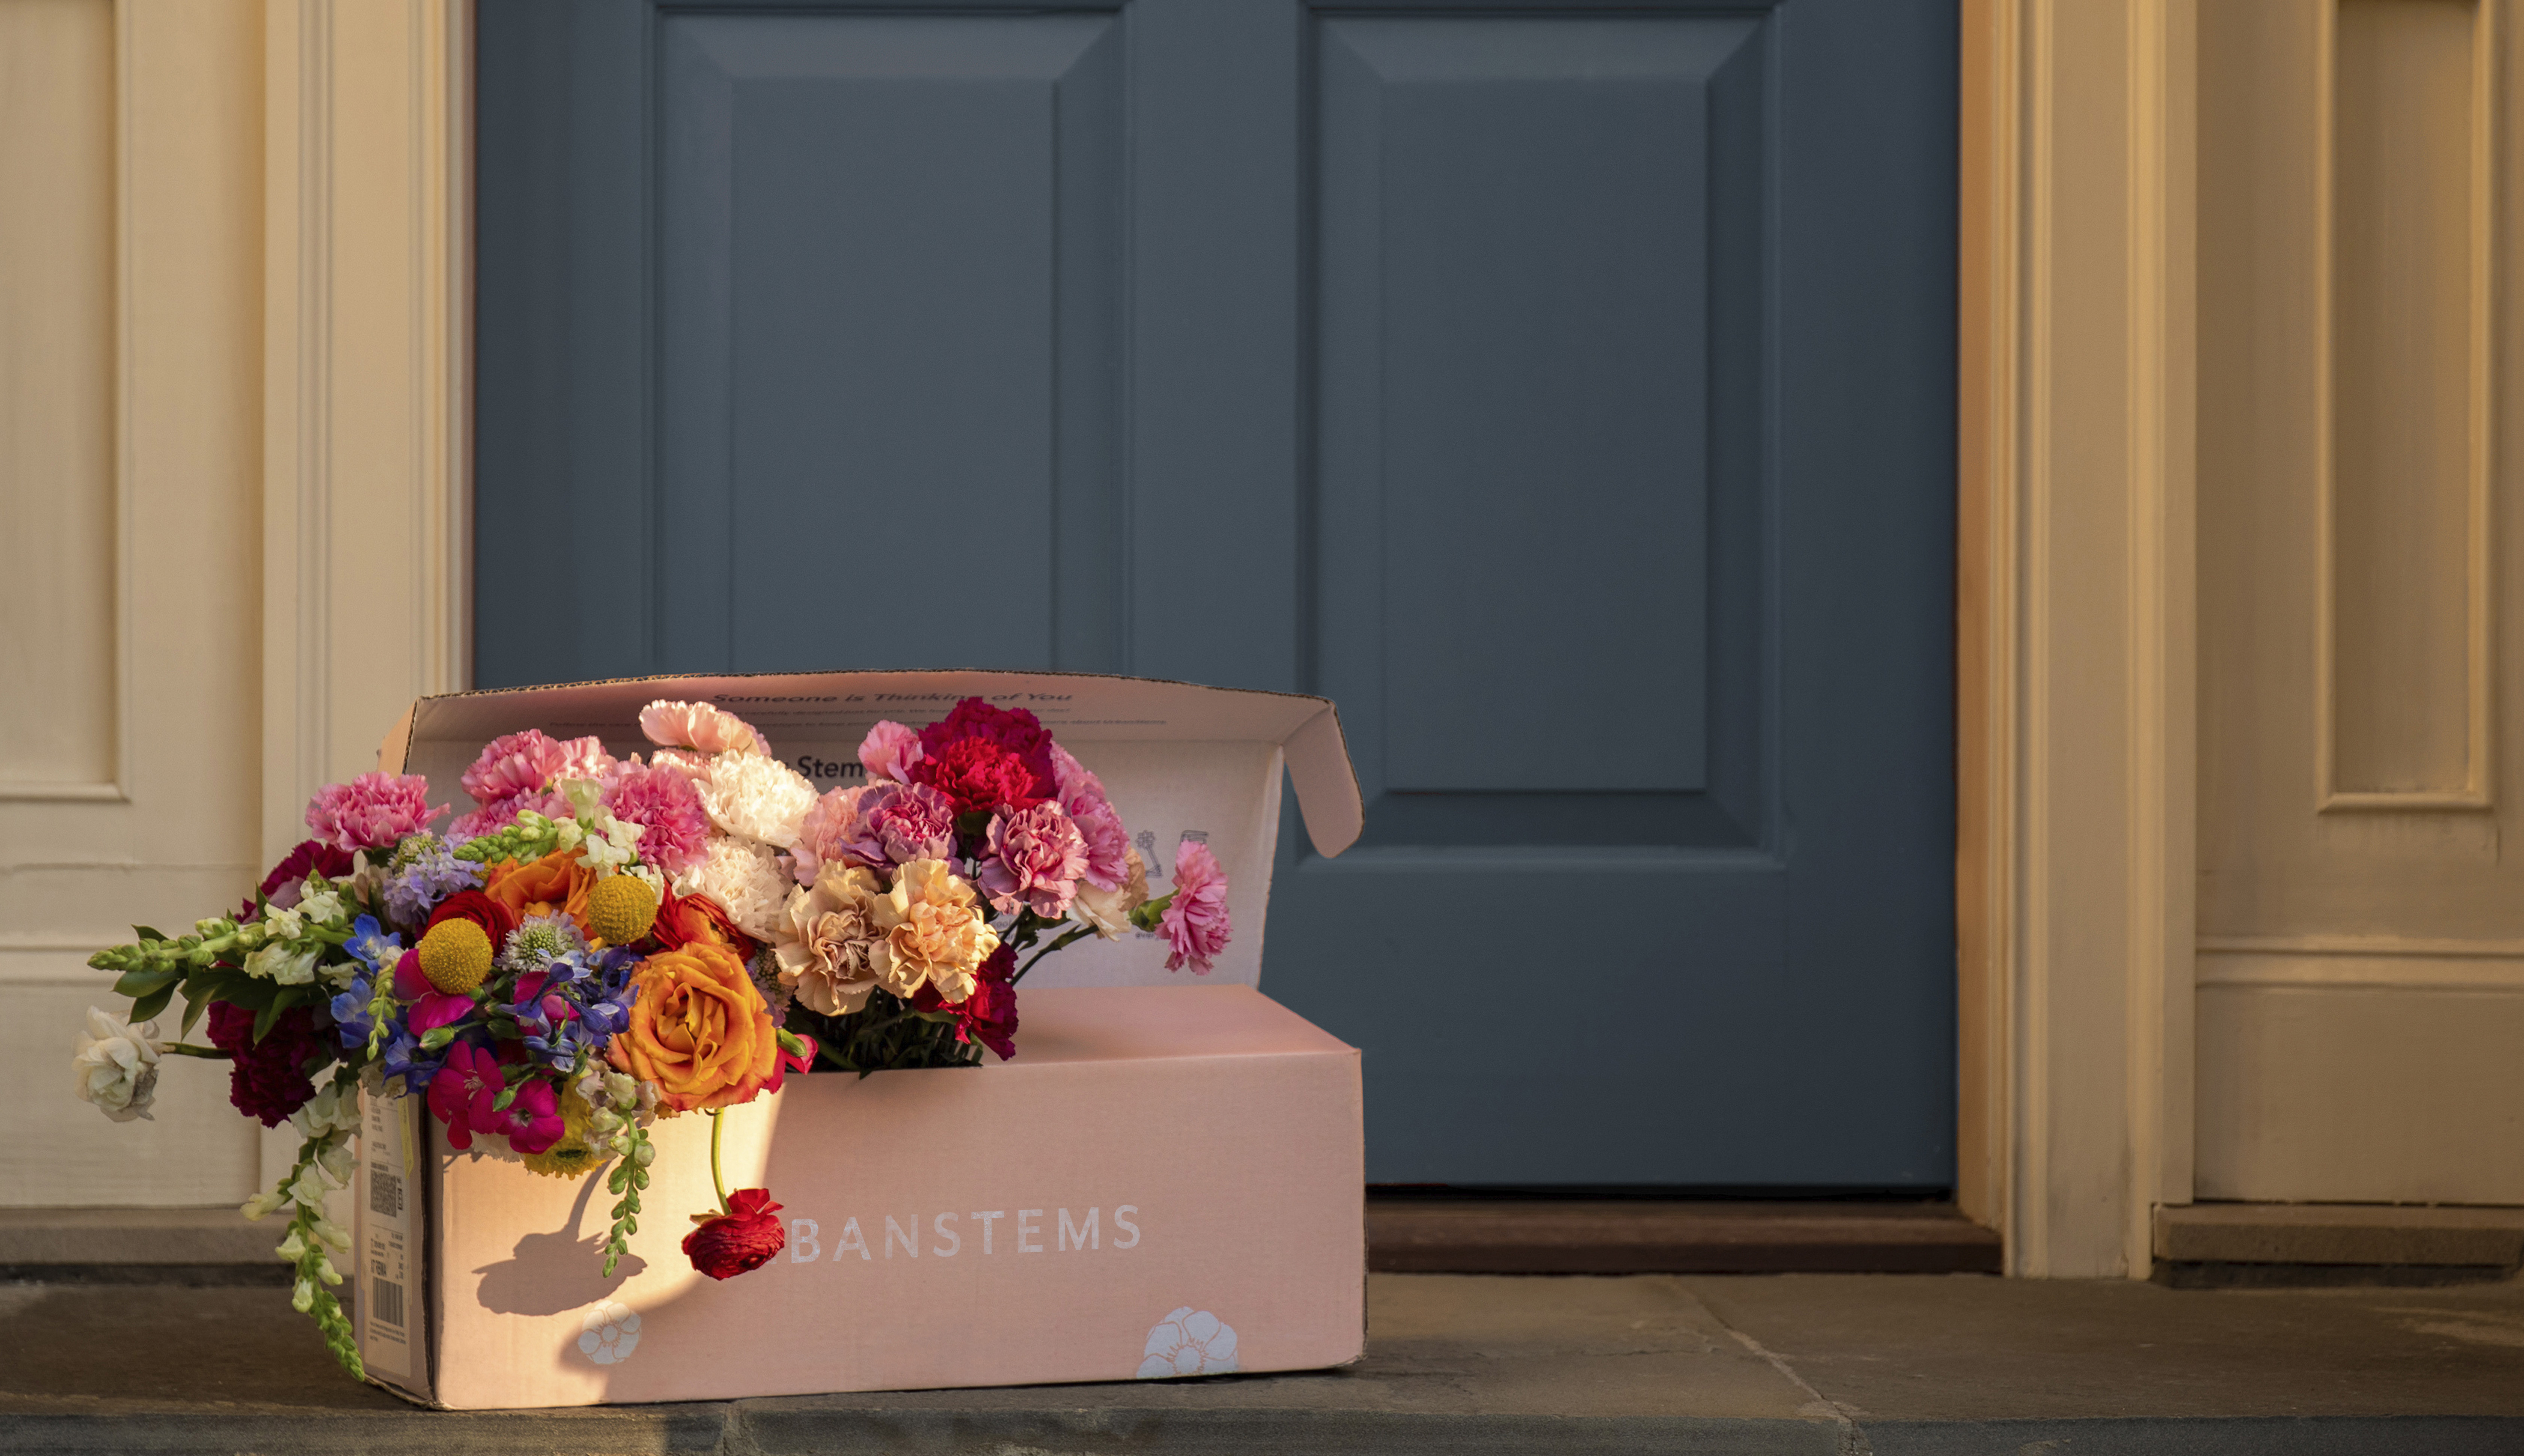 Floral bouquet in same-day deliver box on doorstep